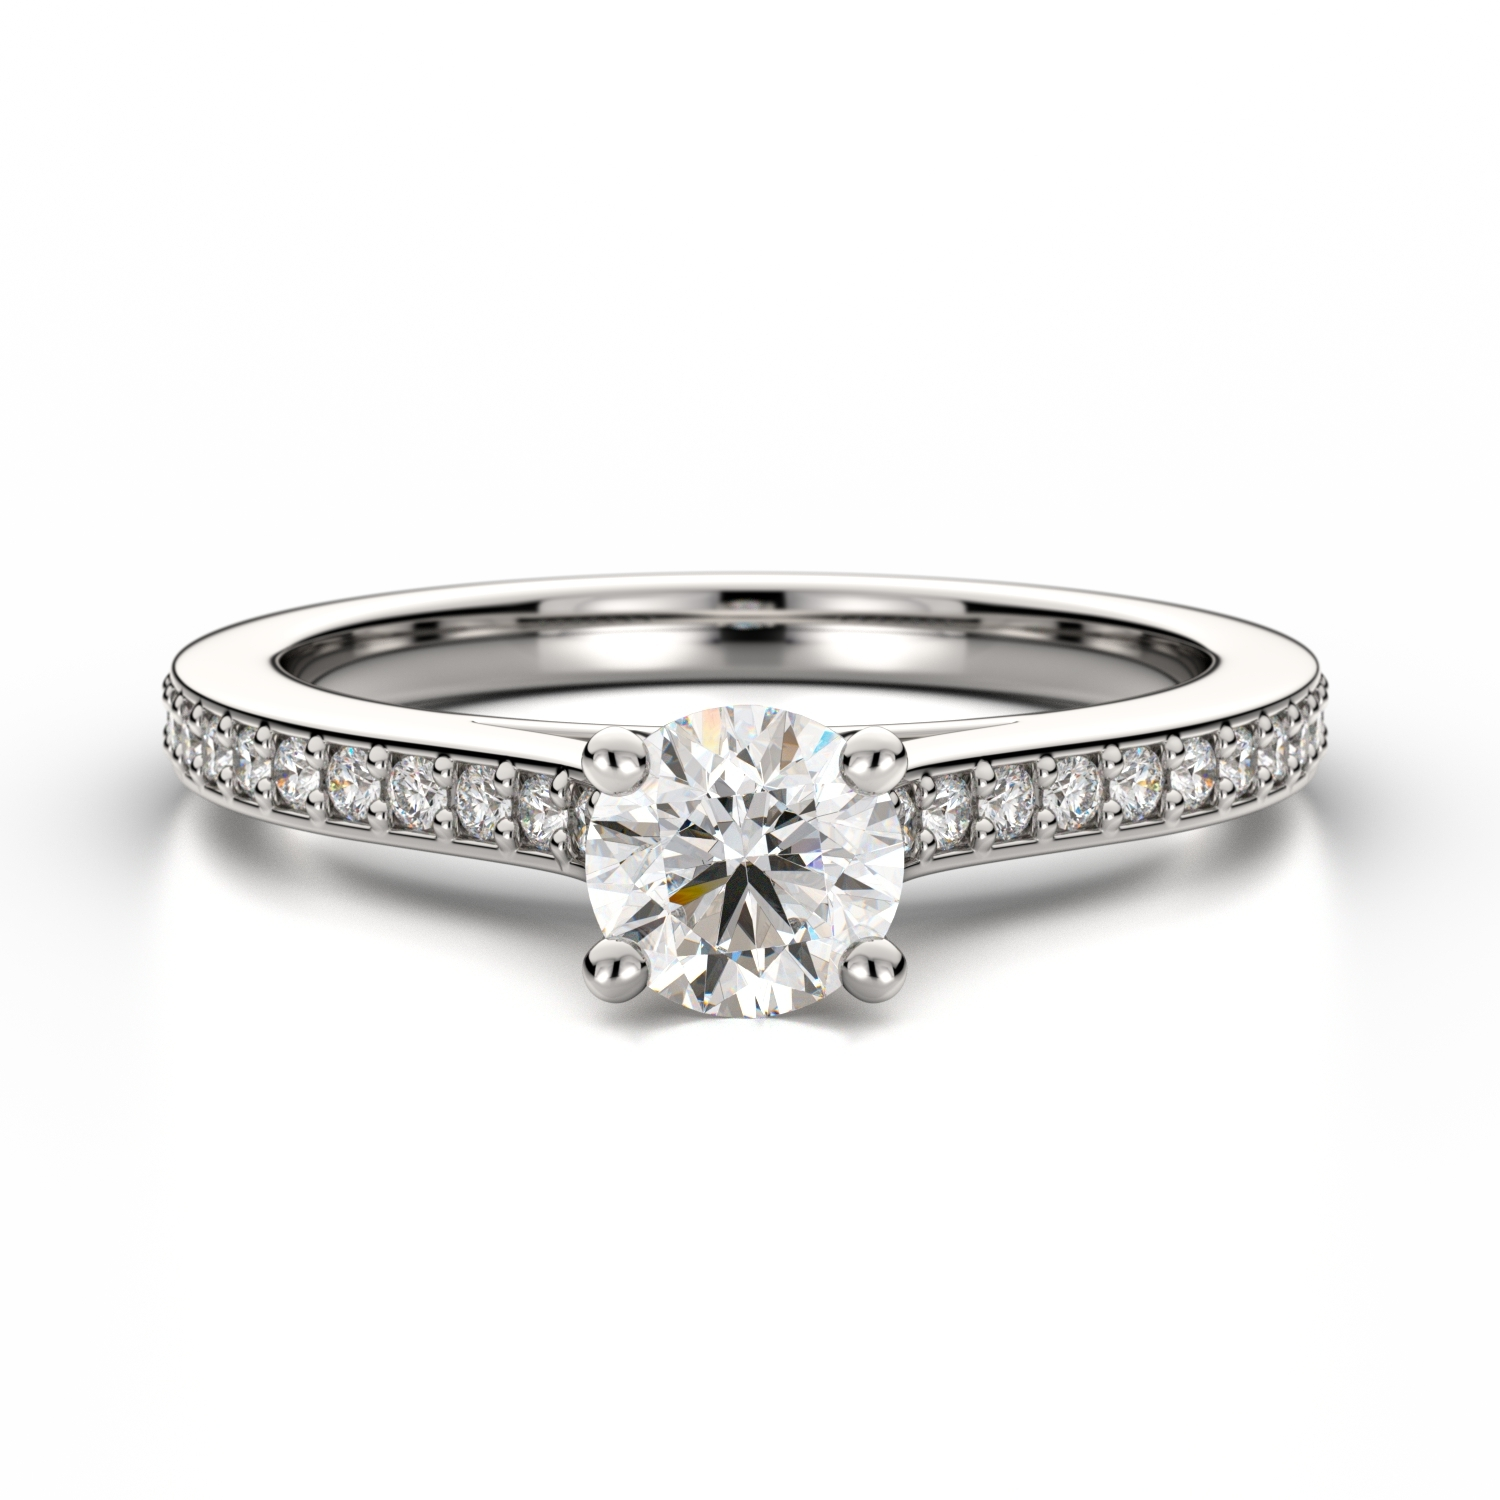 Engagement Rings Newcastle: Round Diamond Ring With Sidestones